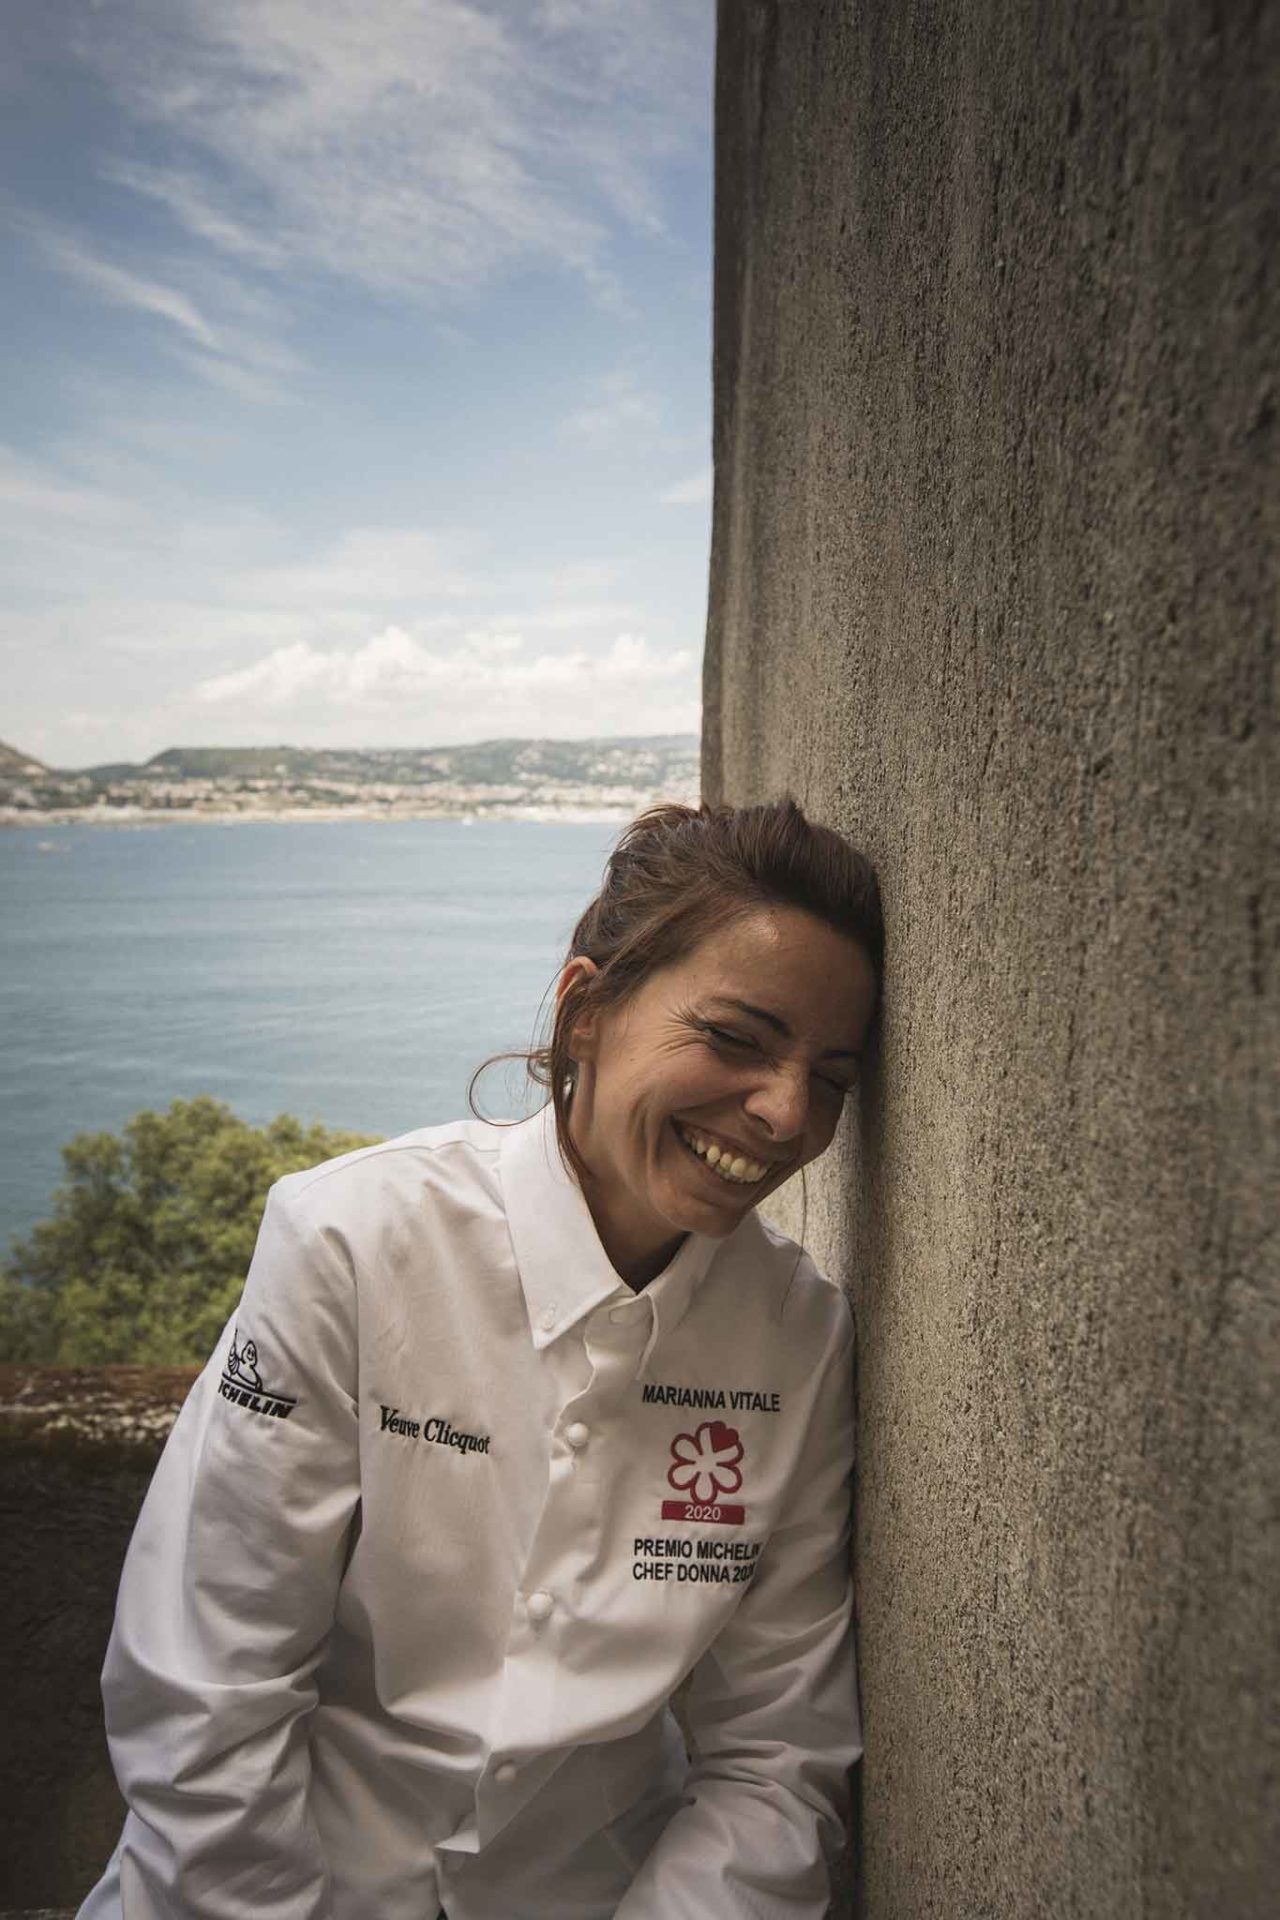 Guida Michelin chef donna